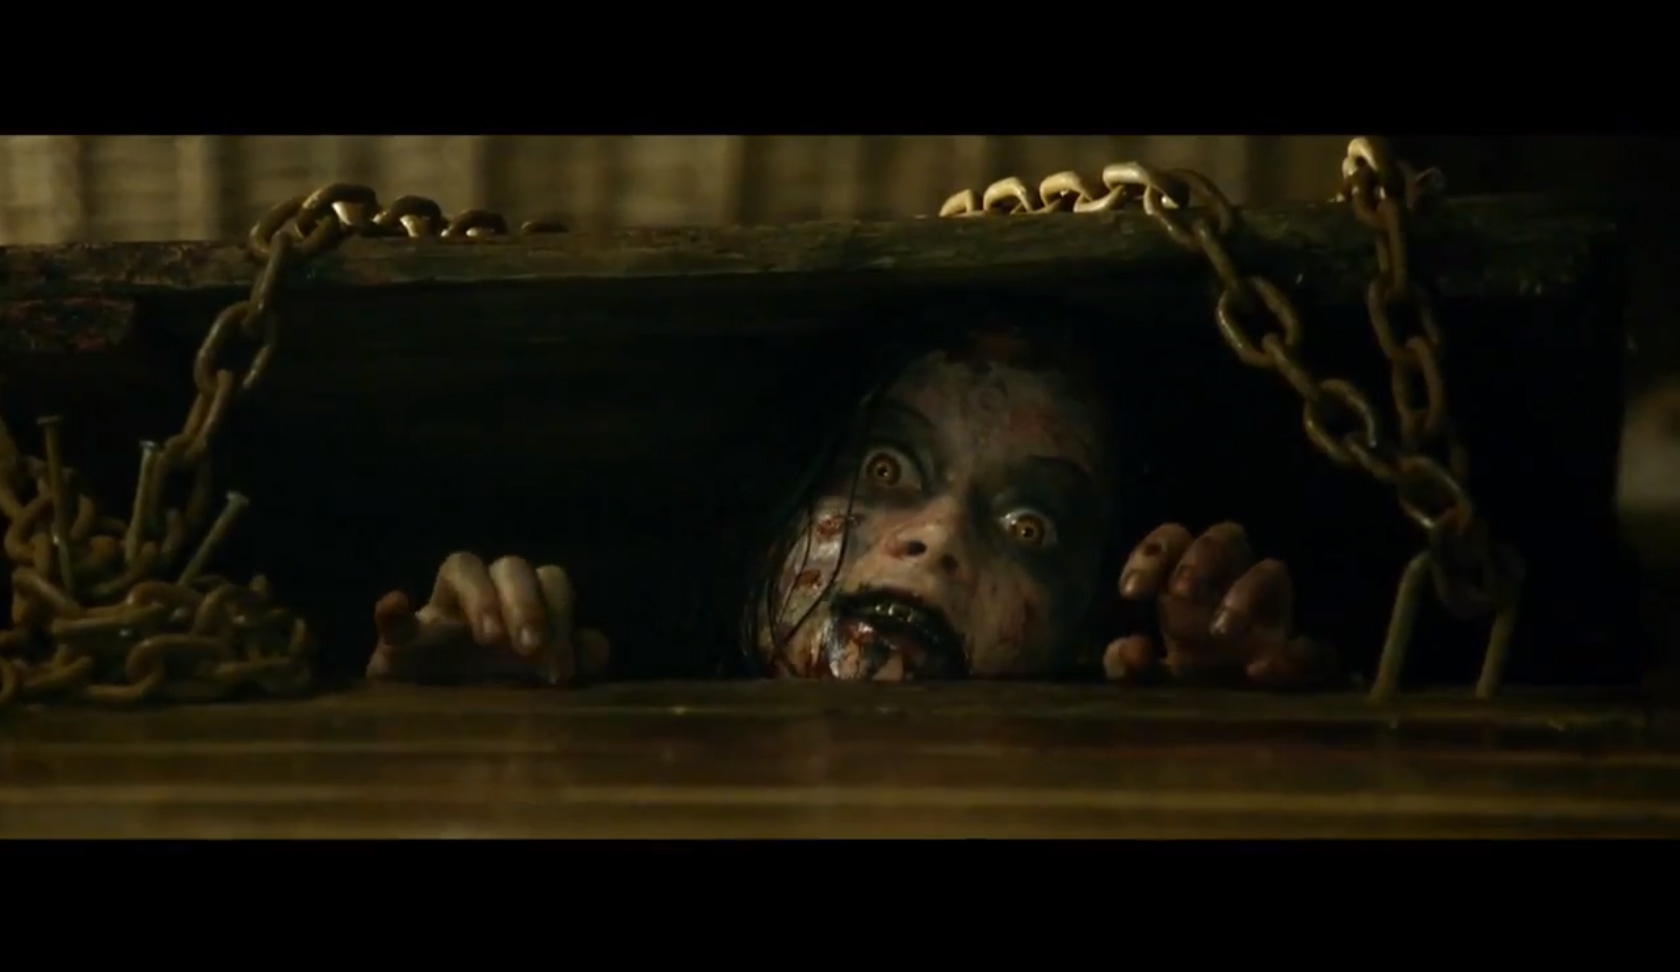 uddy 『C』ult: Review: Evil Dead (2013)